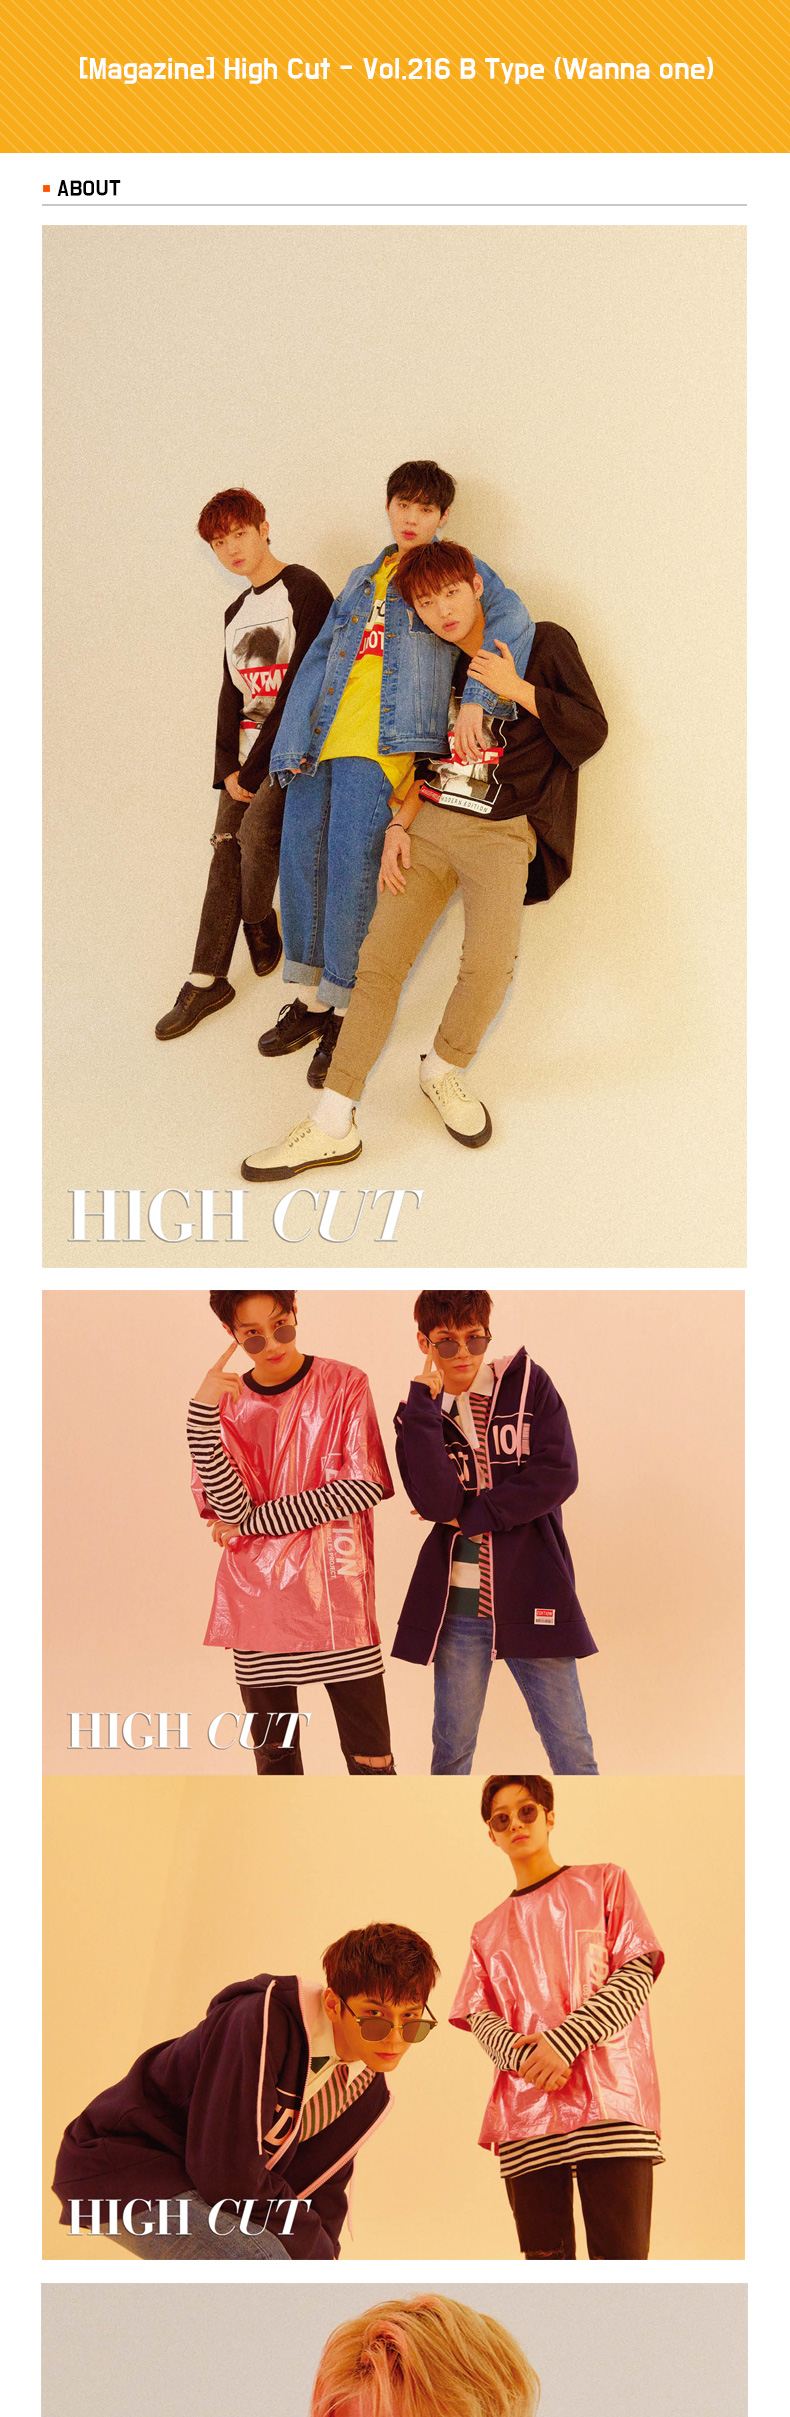 [Magazine] High Cut - Vol.216 B Type (Wanna one)